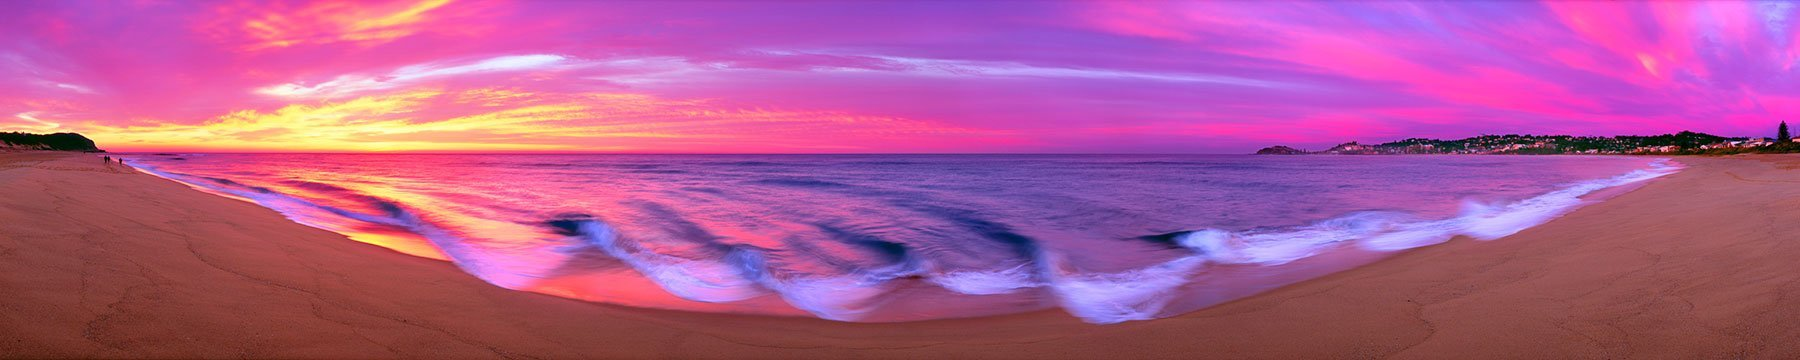 a glorious sunrise at Wamberal Beach, Central Coast, NSW, Australia.